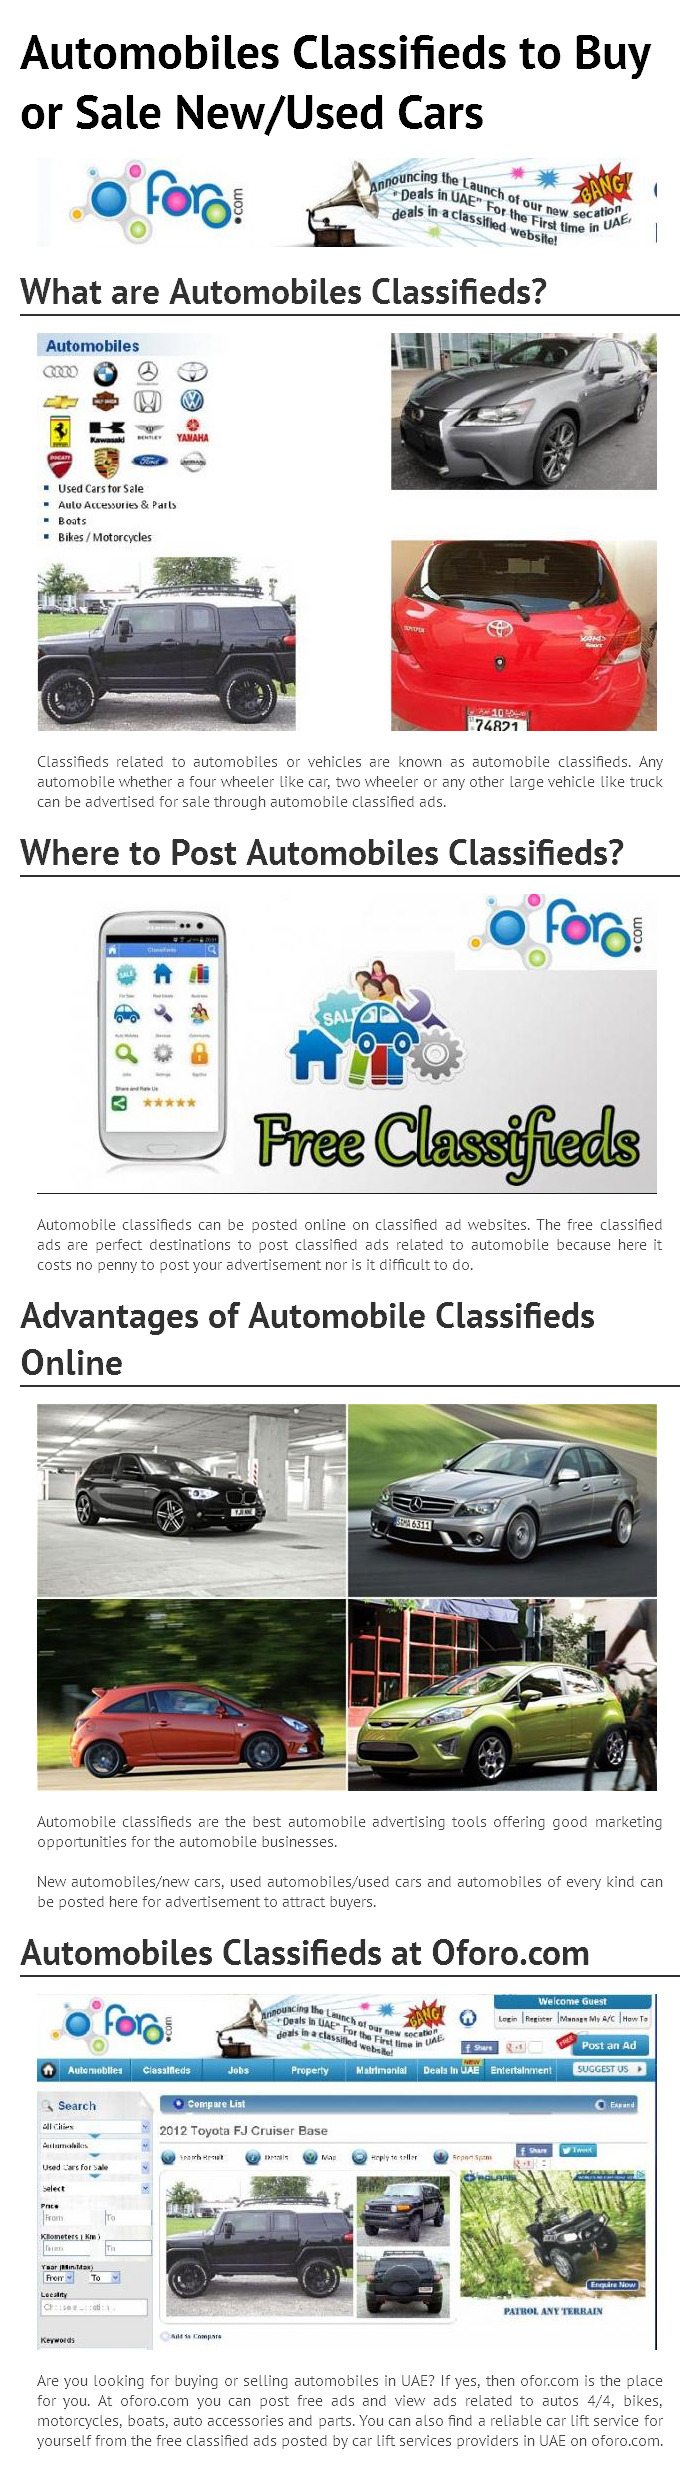 Know in brief about classifieds related to automobiles or vehicles ...